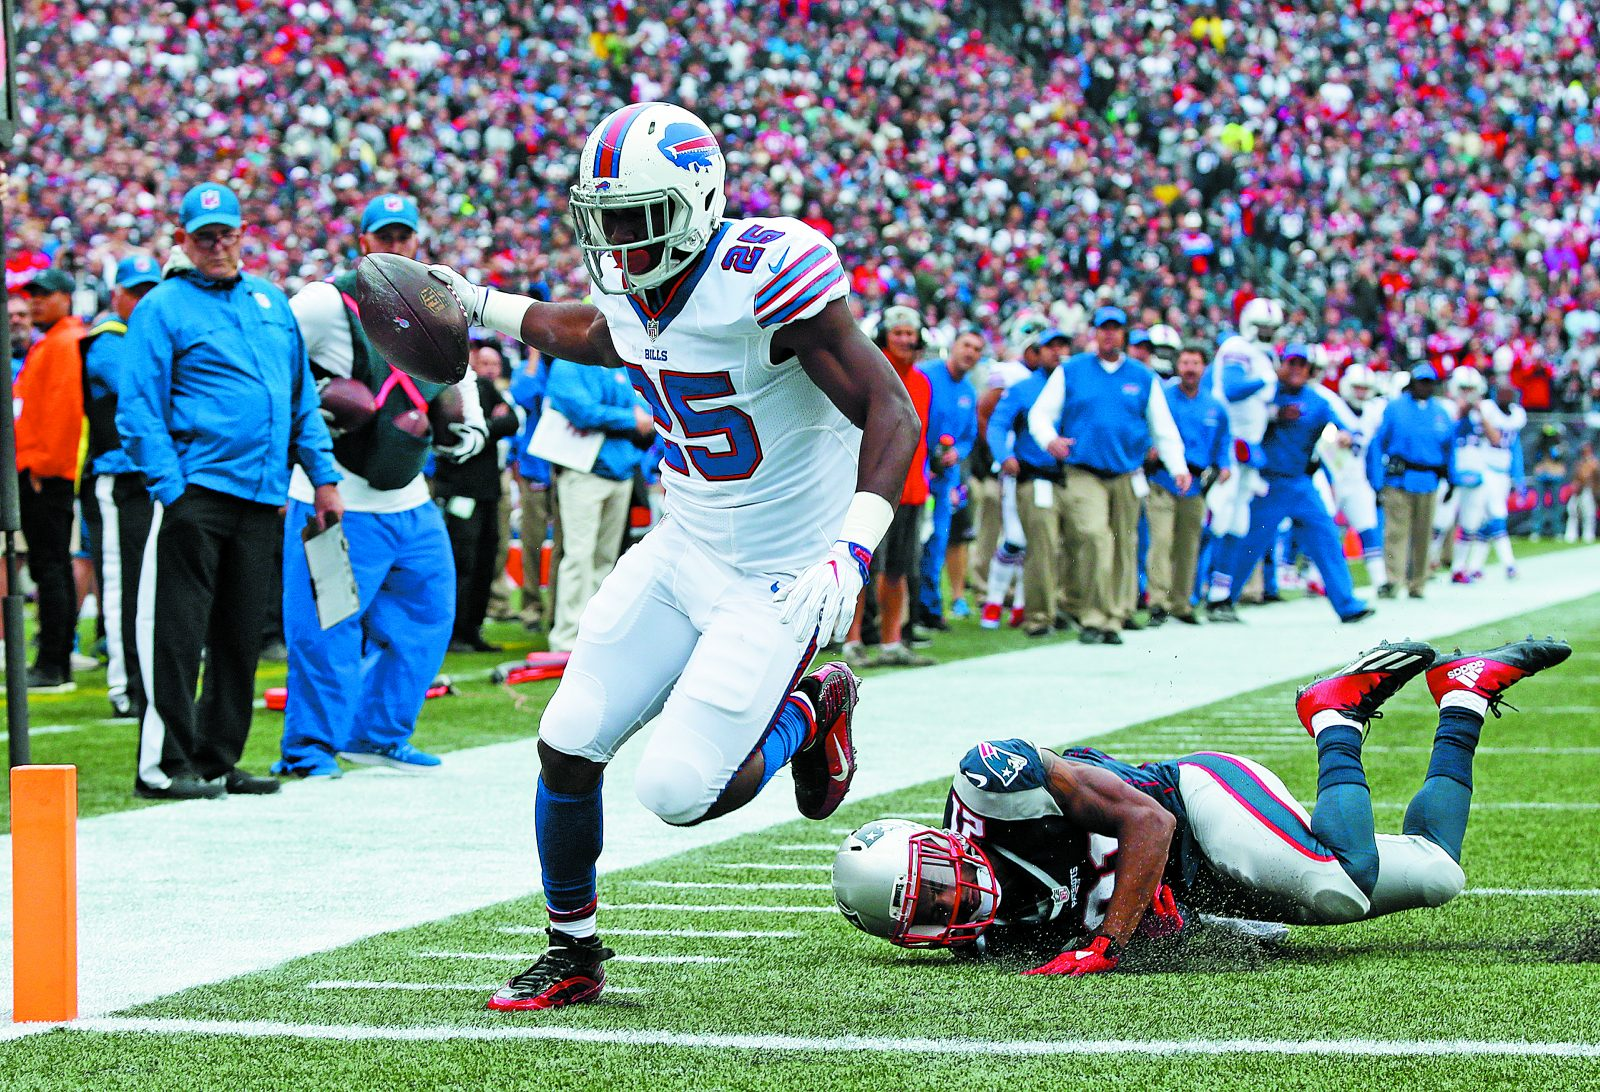 LeSean McCoy (25) rushes for a touchdown during the Bills' win at New England. (James P. McCoy/ Buffalo News)